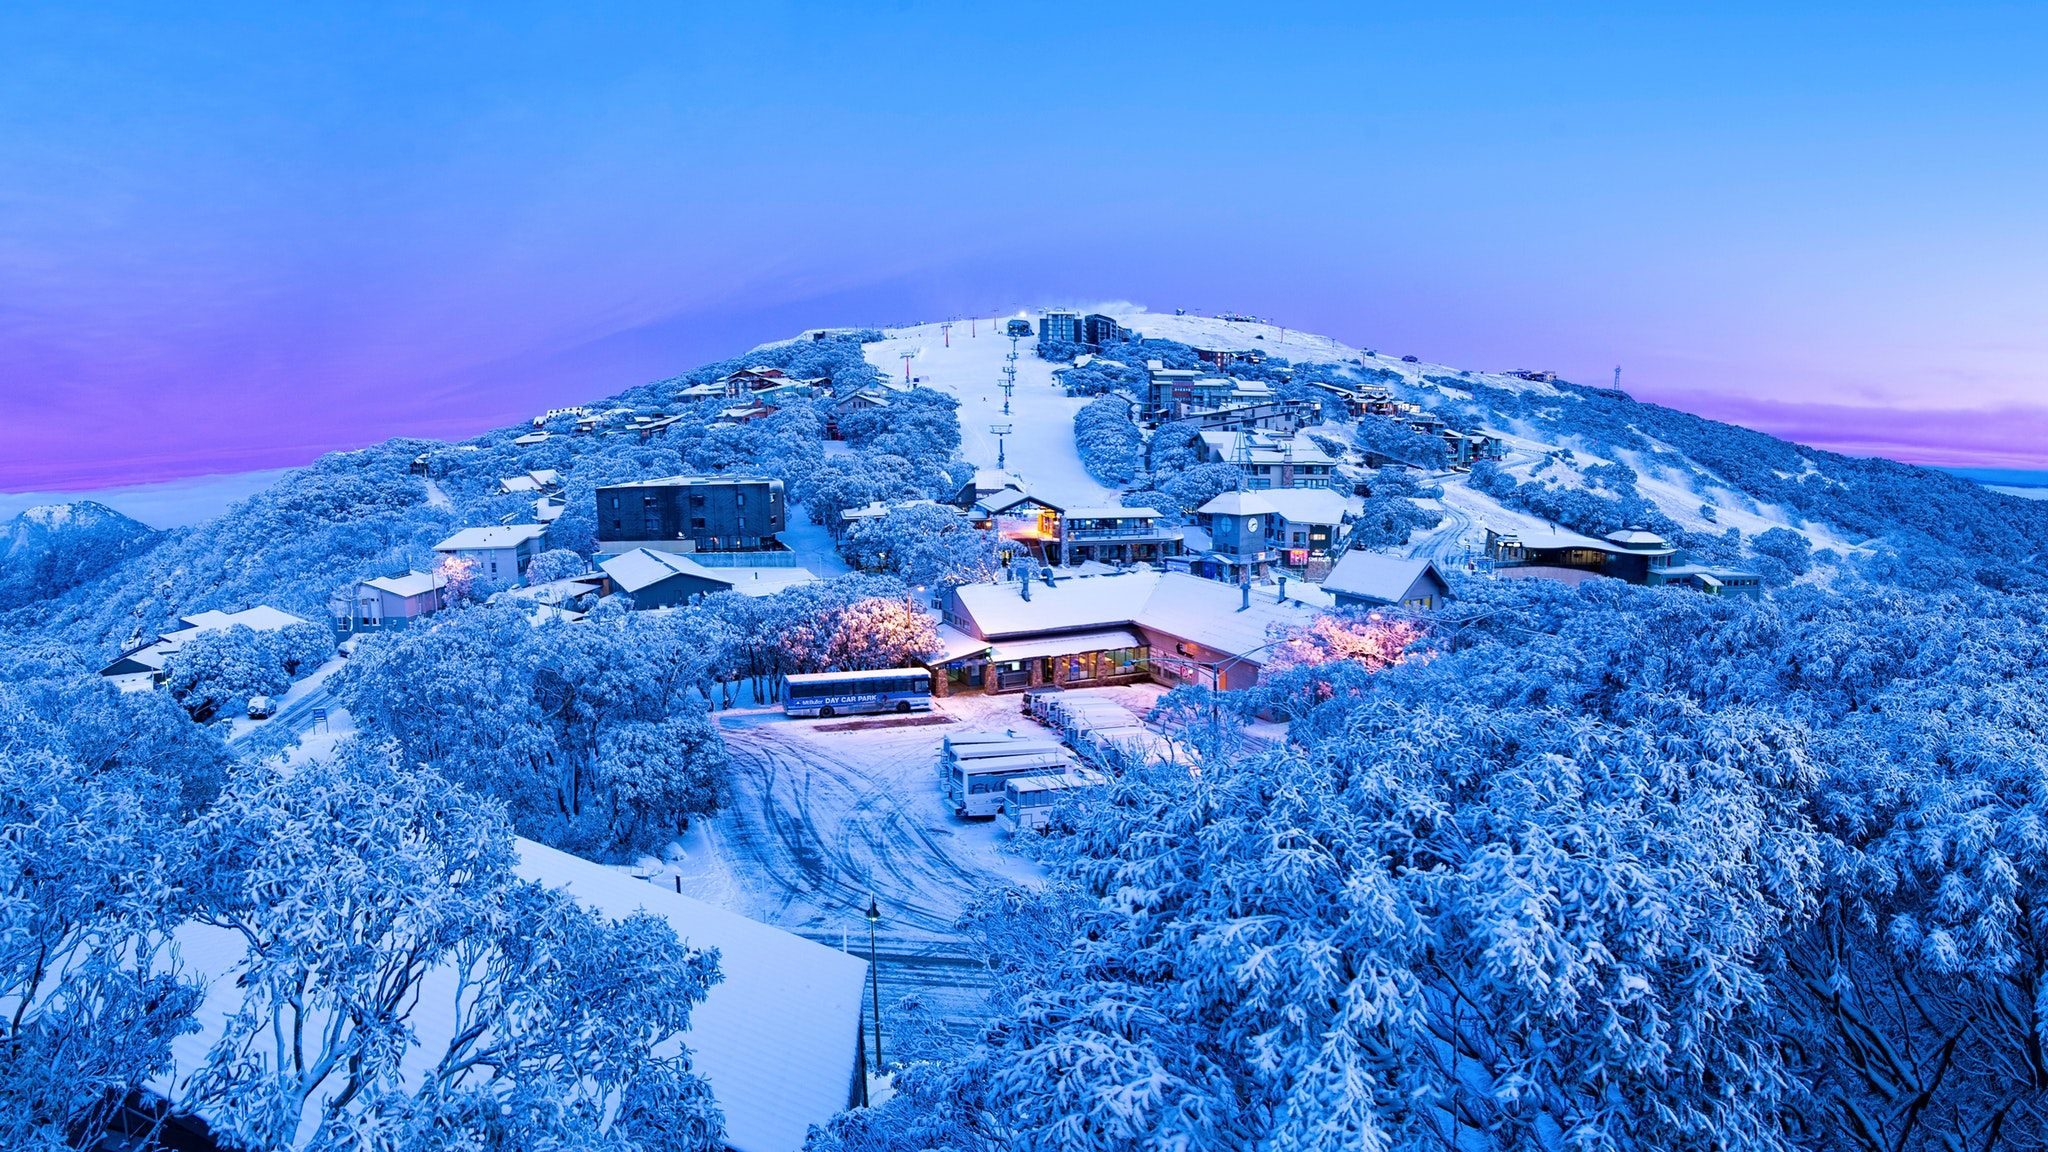 What Do I Need To Know Before I Go To The Snow At Mt. Buller?